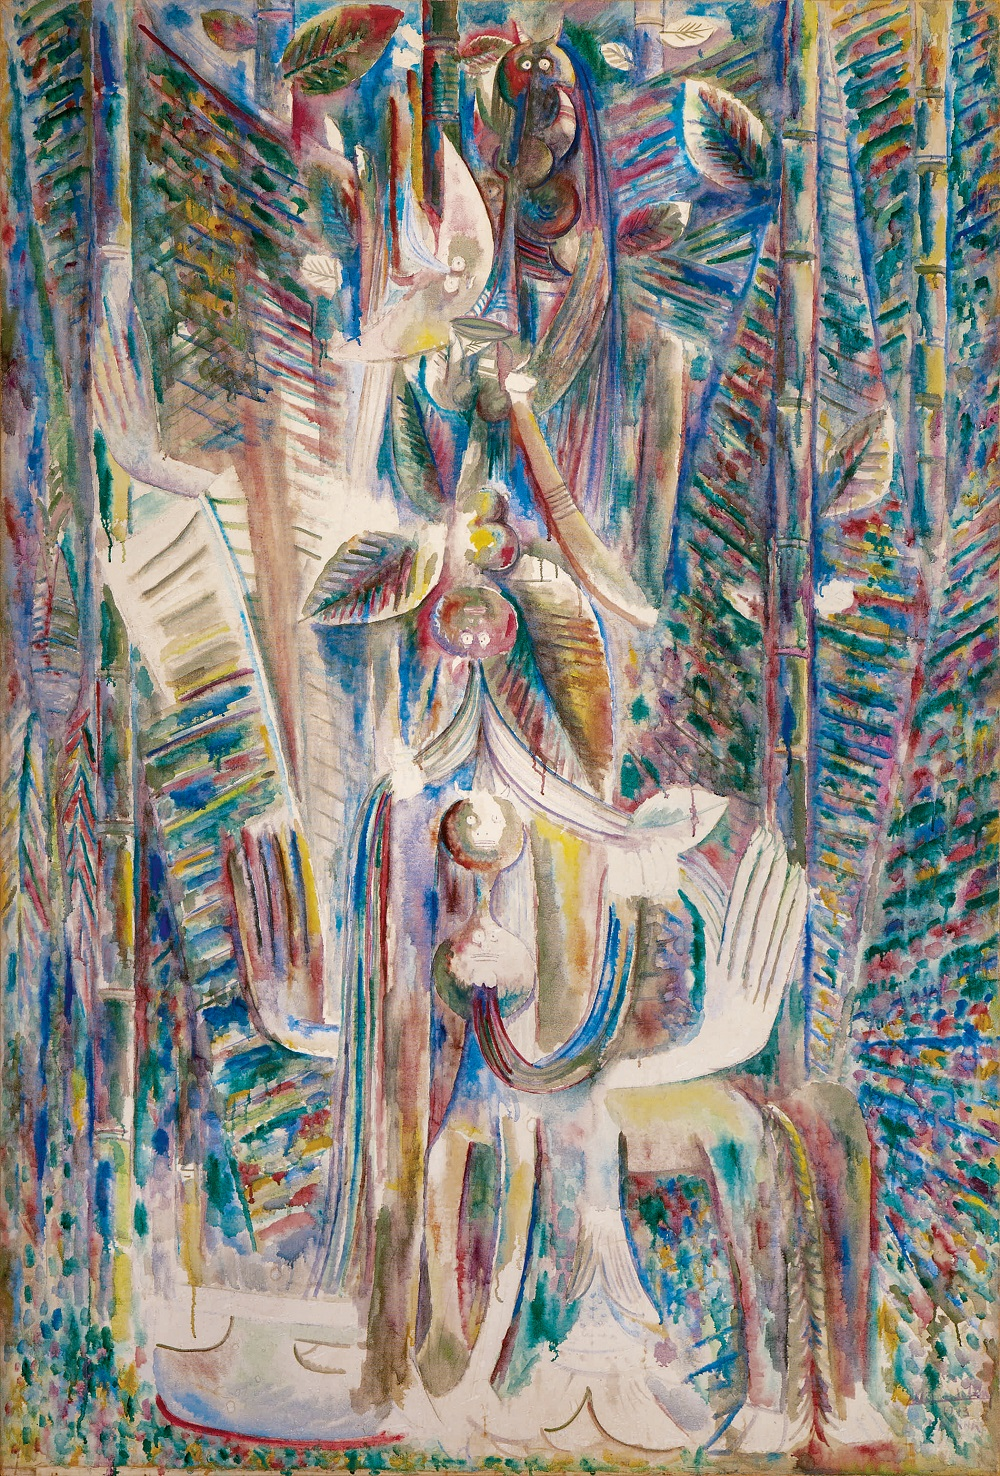 Wifredo Lam Masterpiece To Be Offered For Sale By Sotheby's